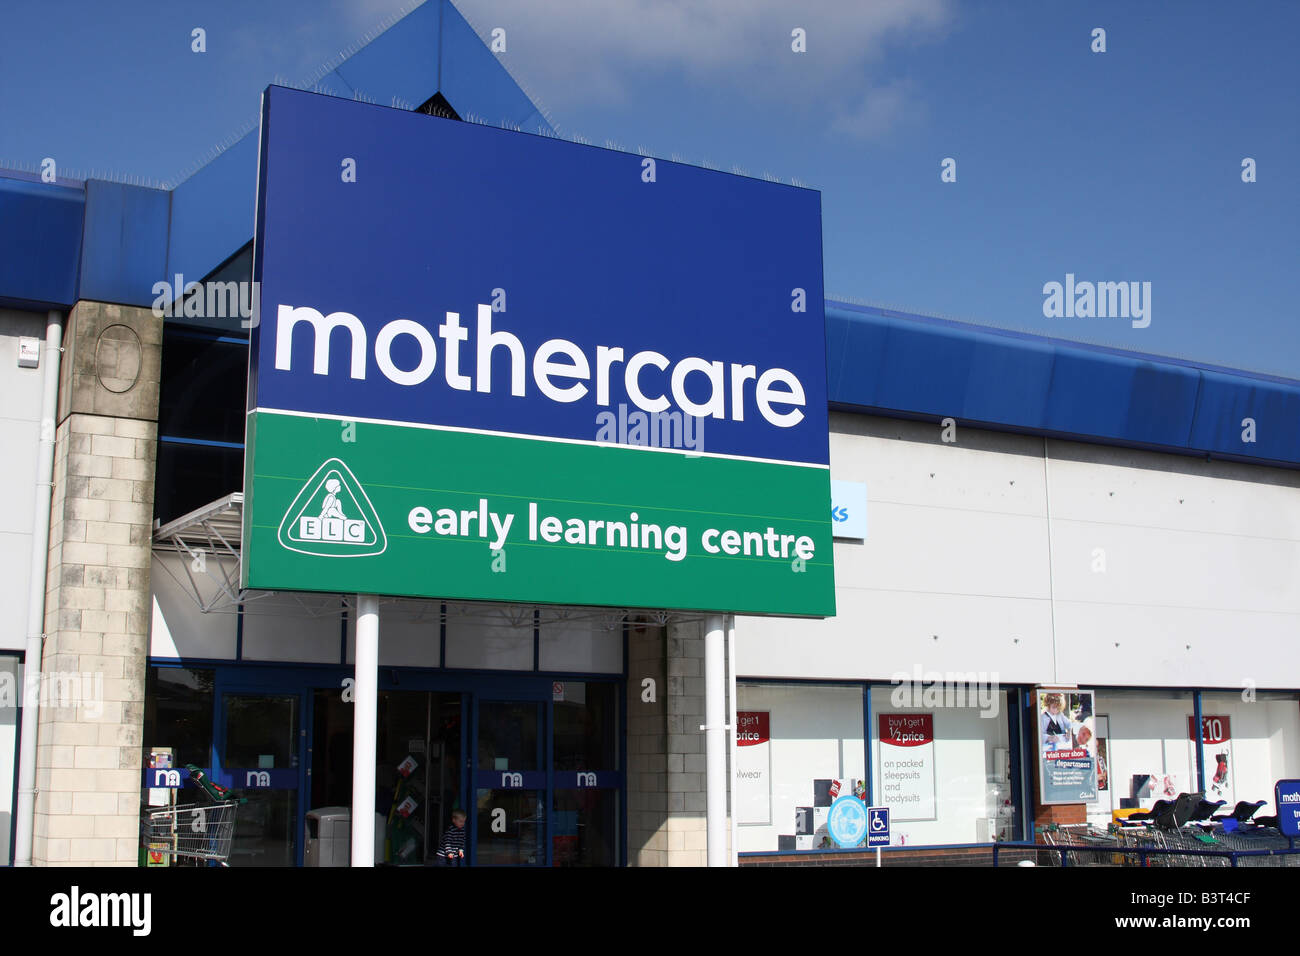 A Mothercare retail outlet, Nottingham, England, U.K. - Stock Image